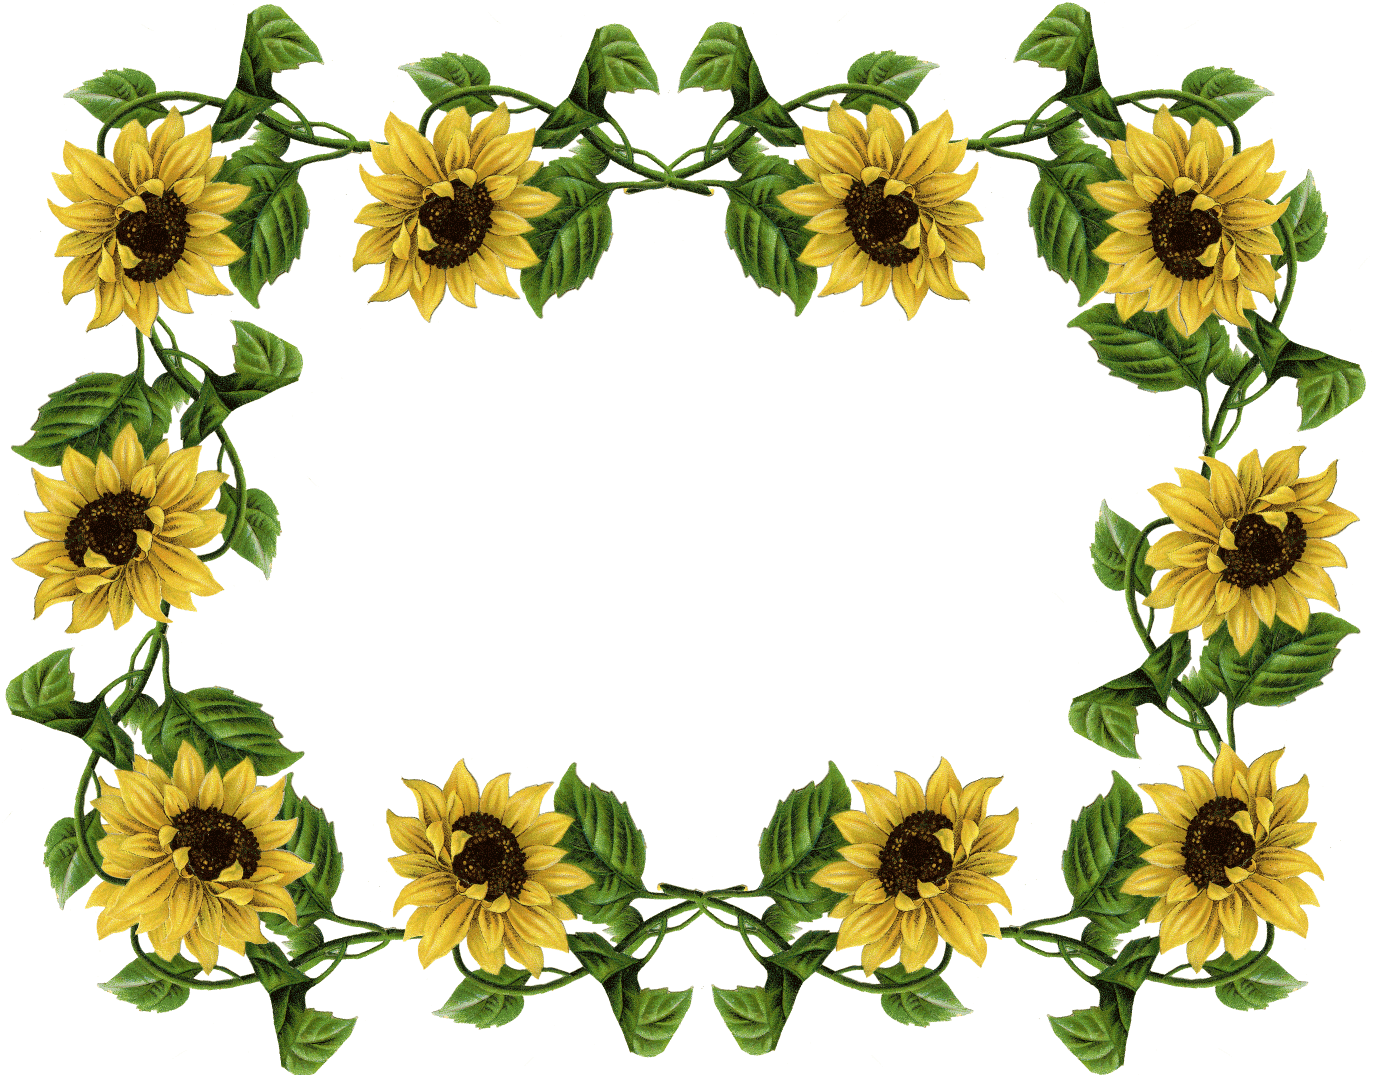 ... frame | sunflowers | Pinterest | Beautiful, Search and Borders free